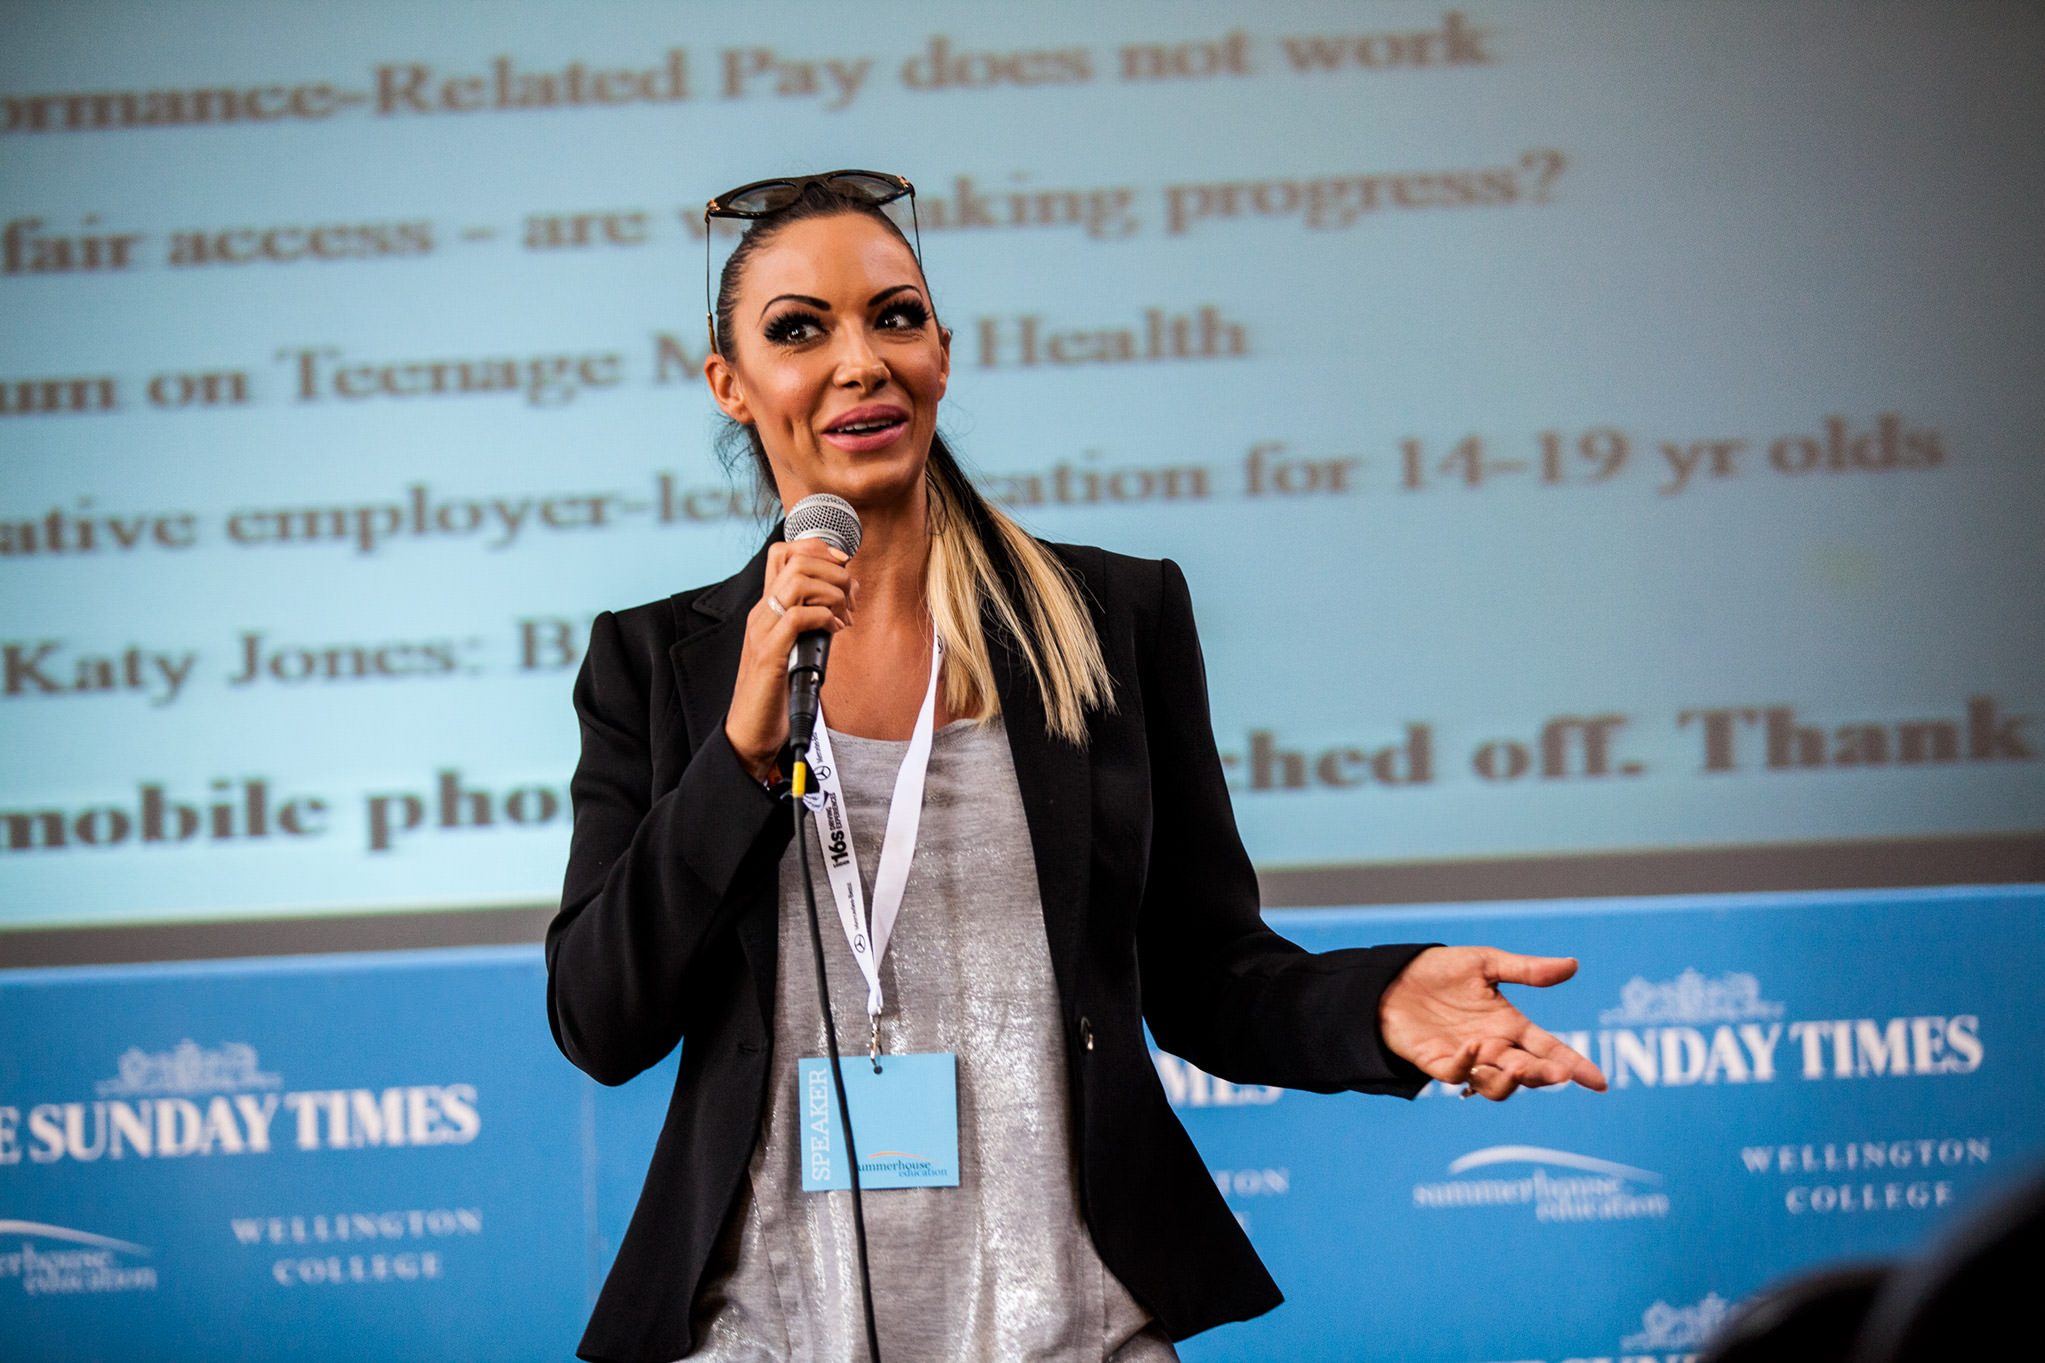 Jodie marsh Sunday times festival of education